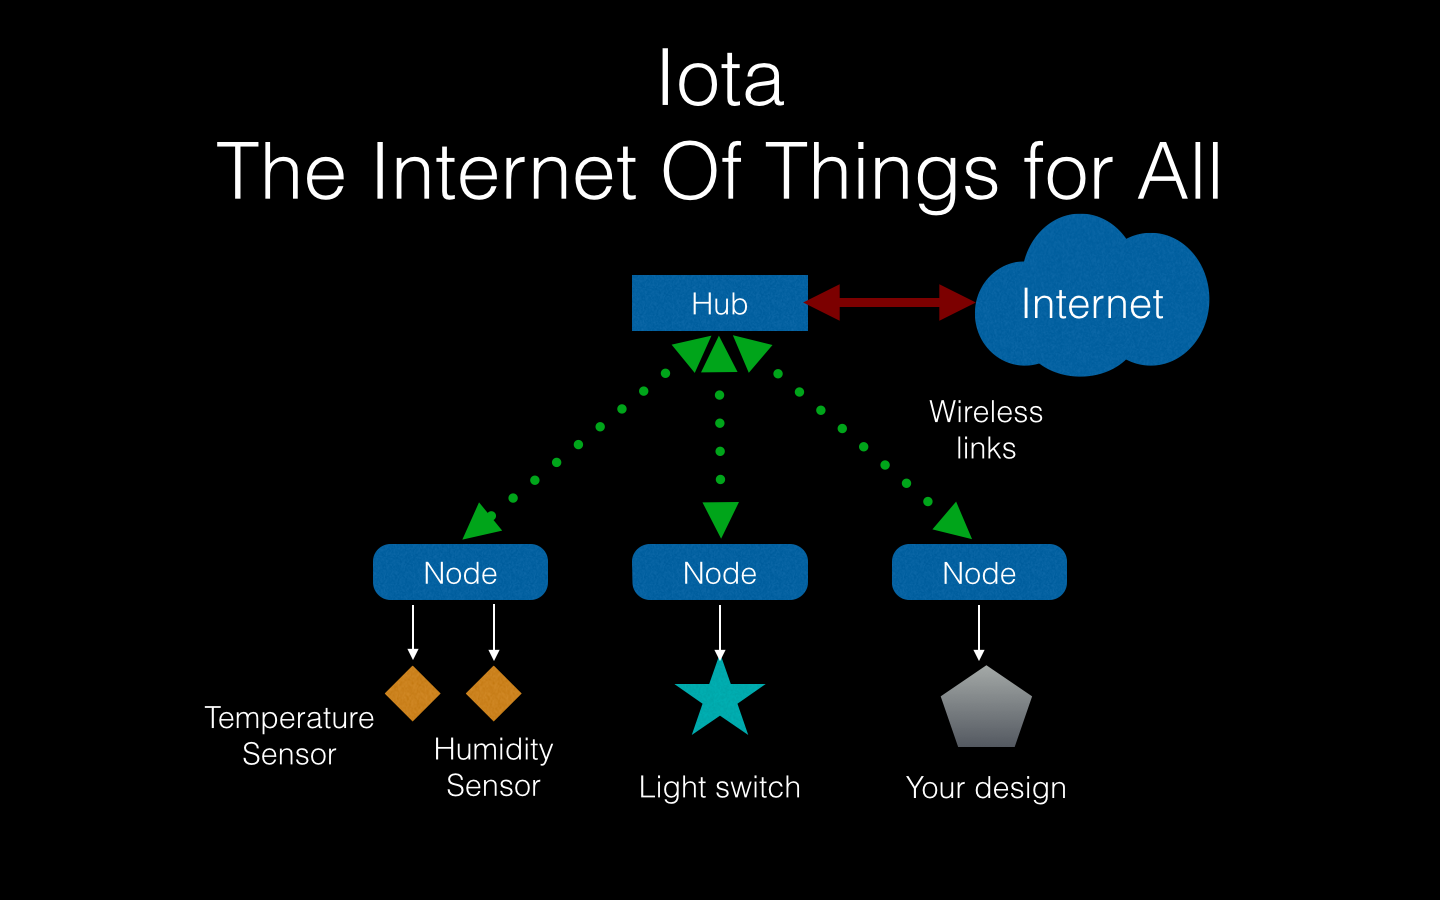 Iota: Internet Of Things For All